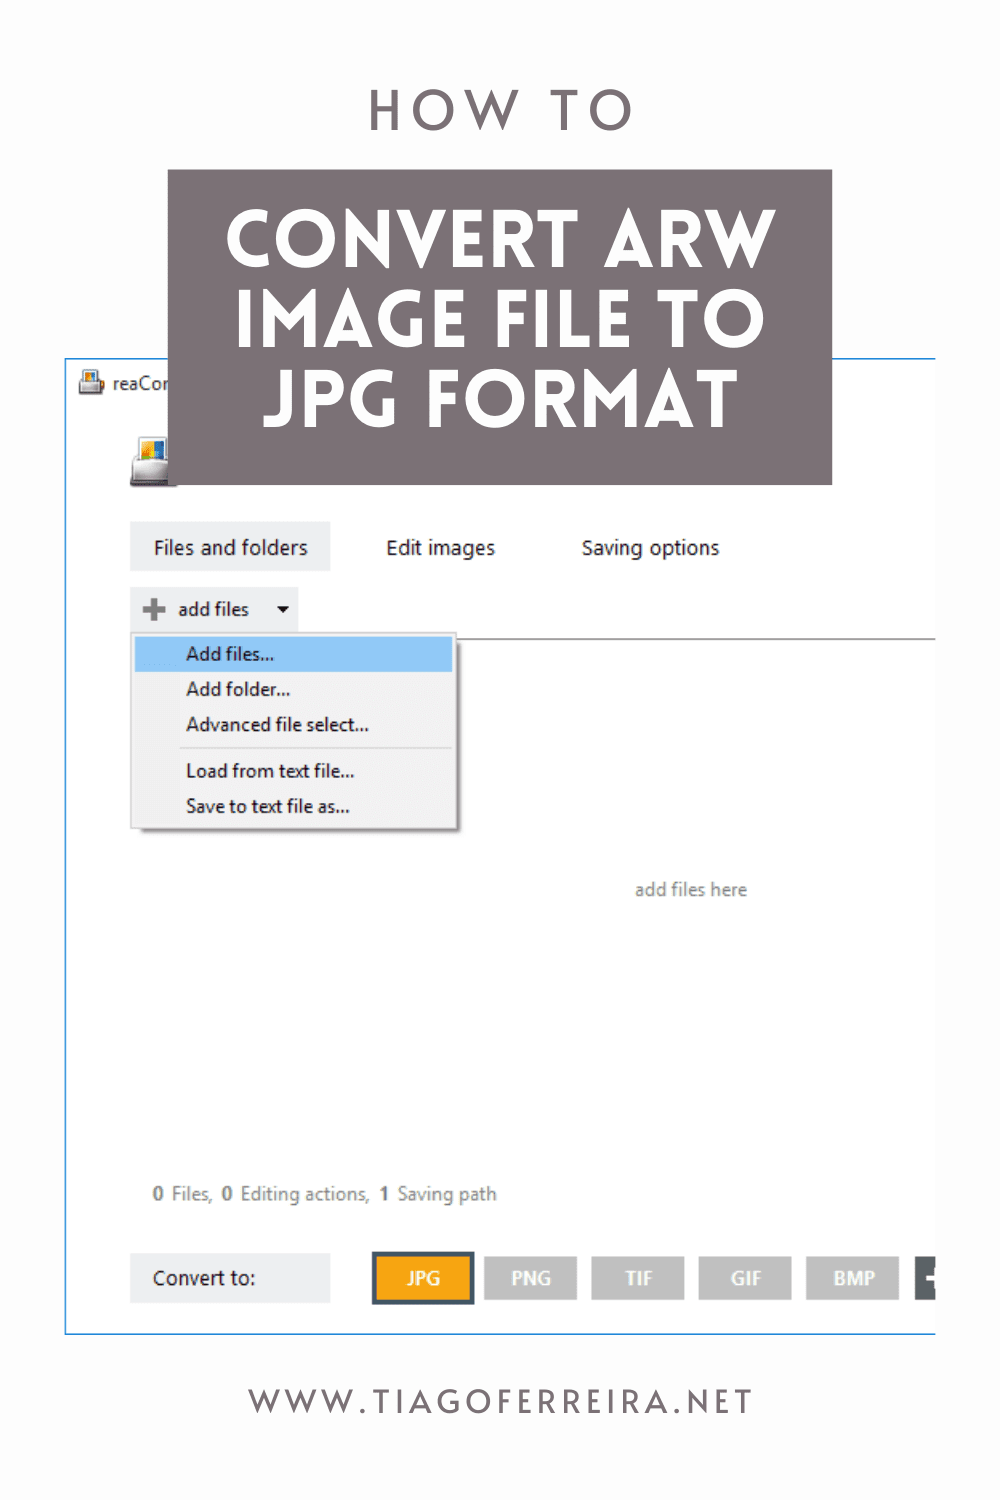 How To Convert ARW Image File To JPG Format